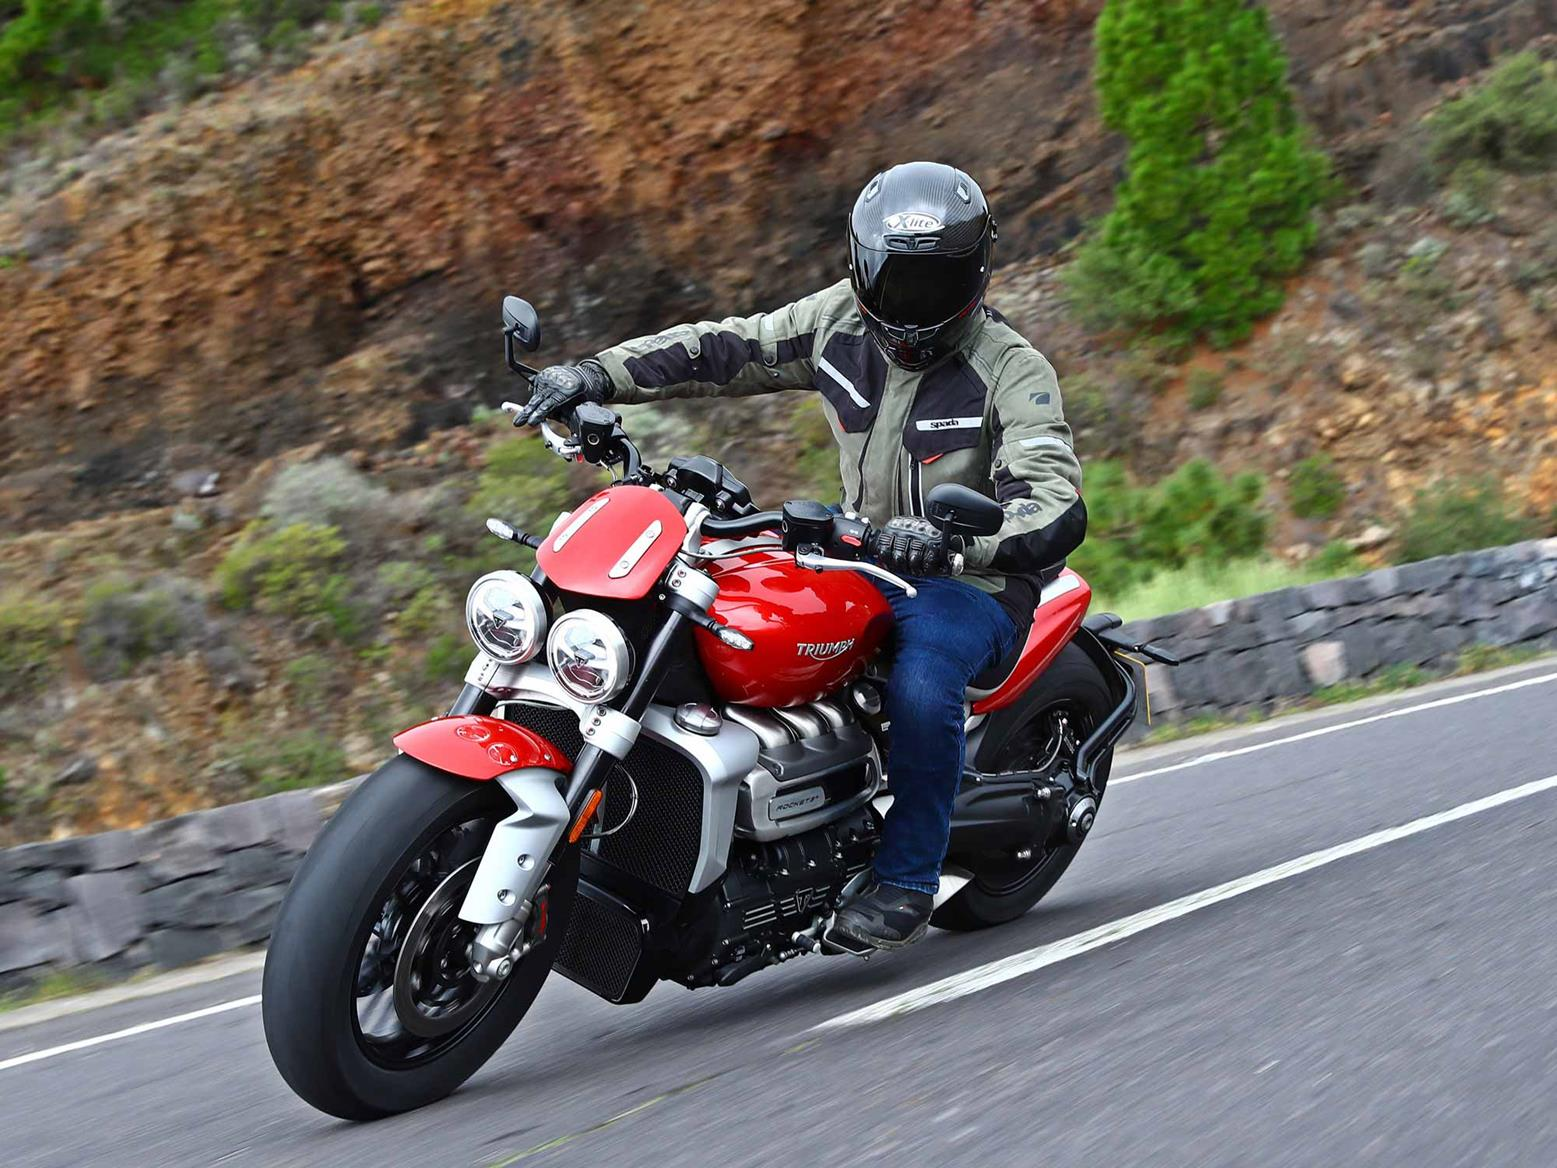 A front-end view of the Triumph Rocket 3